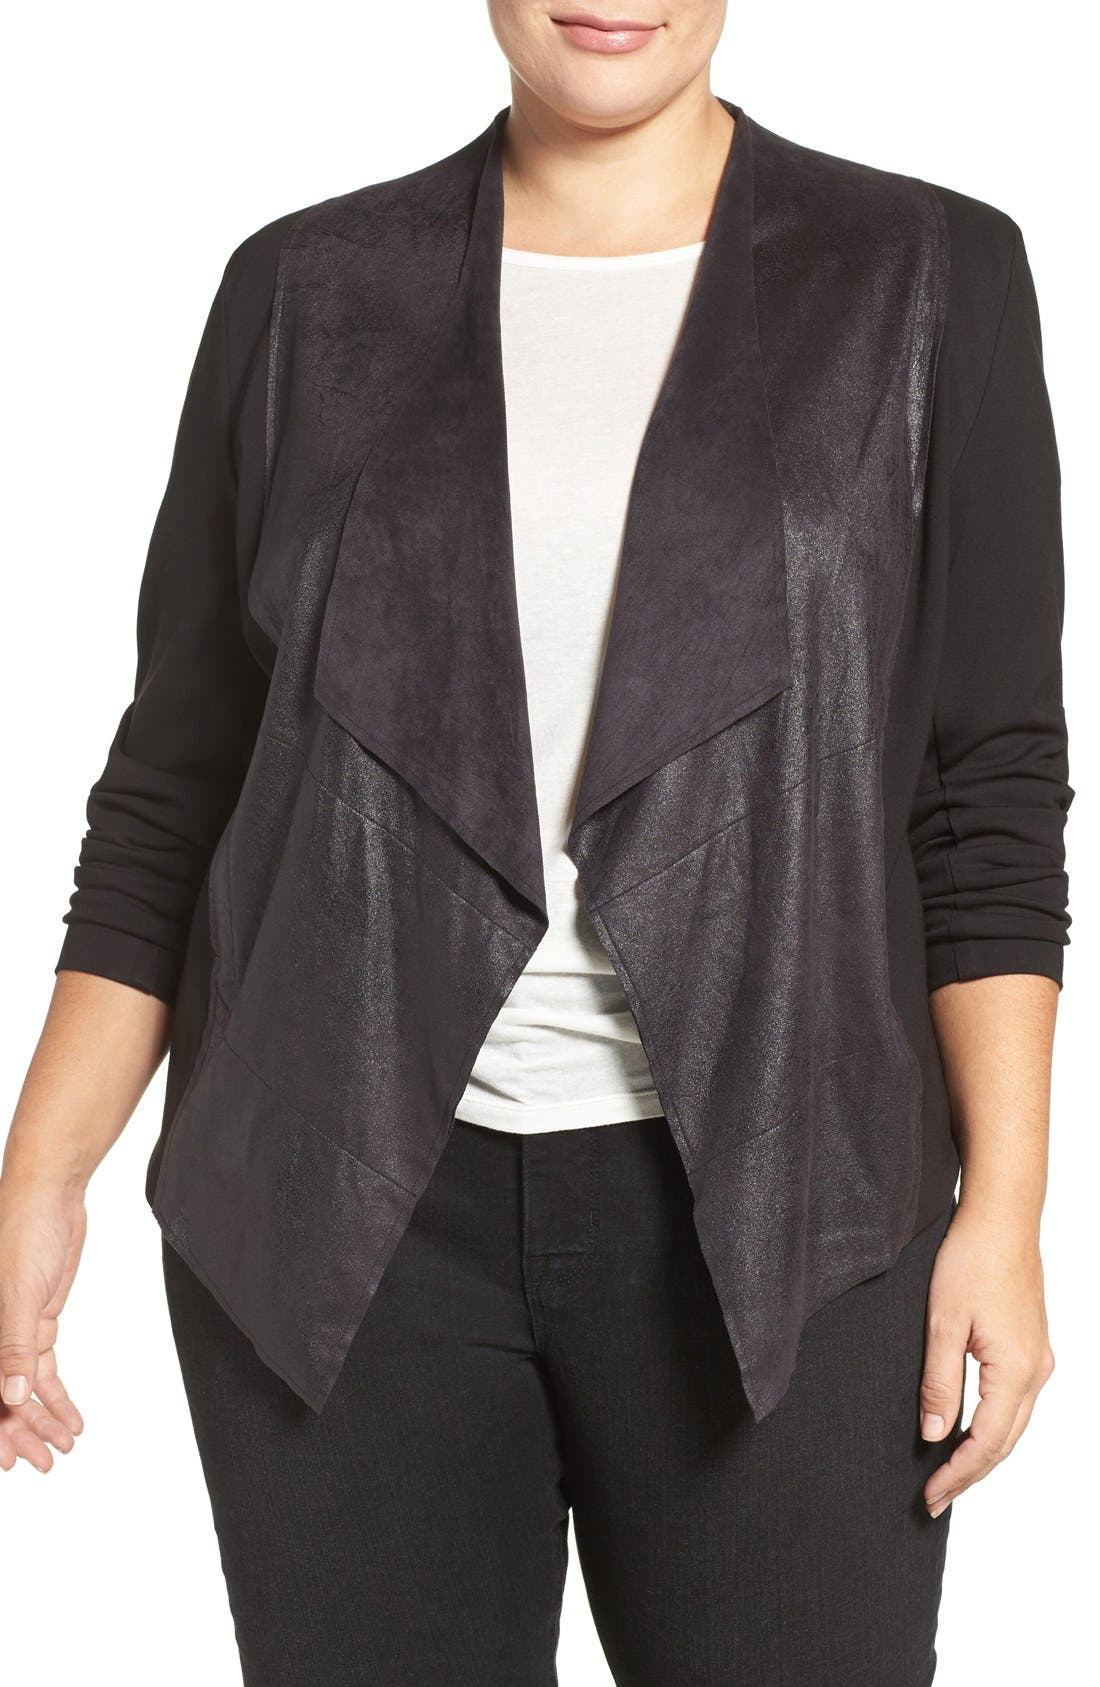 'Shanan' Faux Leather & Knit Drape Front Jacket,                             Main thumbnail 1, color,                             BLACK